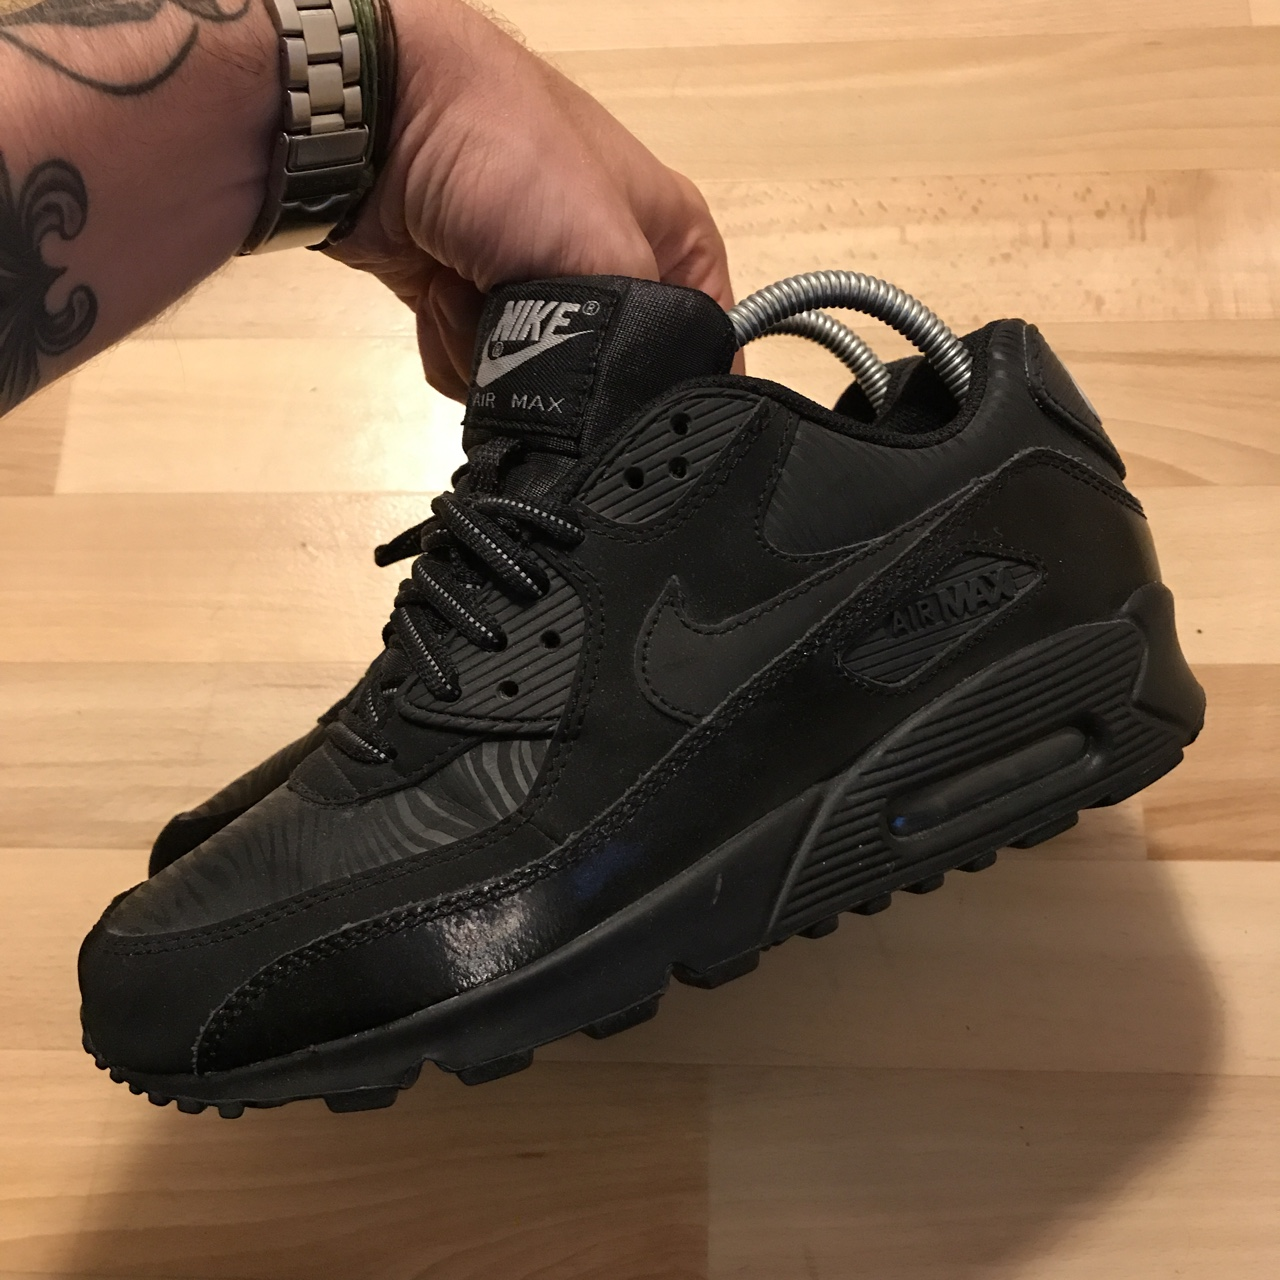 87ac909d9295d al_chewy. London, United Kingdom. Nike Air Max 90 Reflective Black Tiger ...